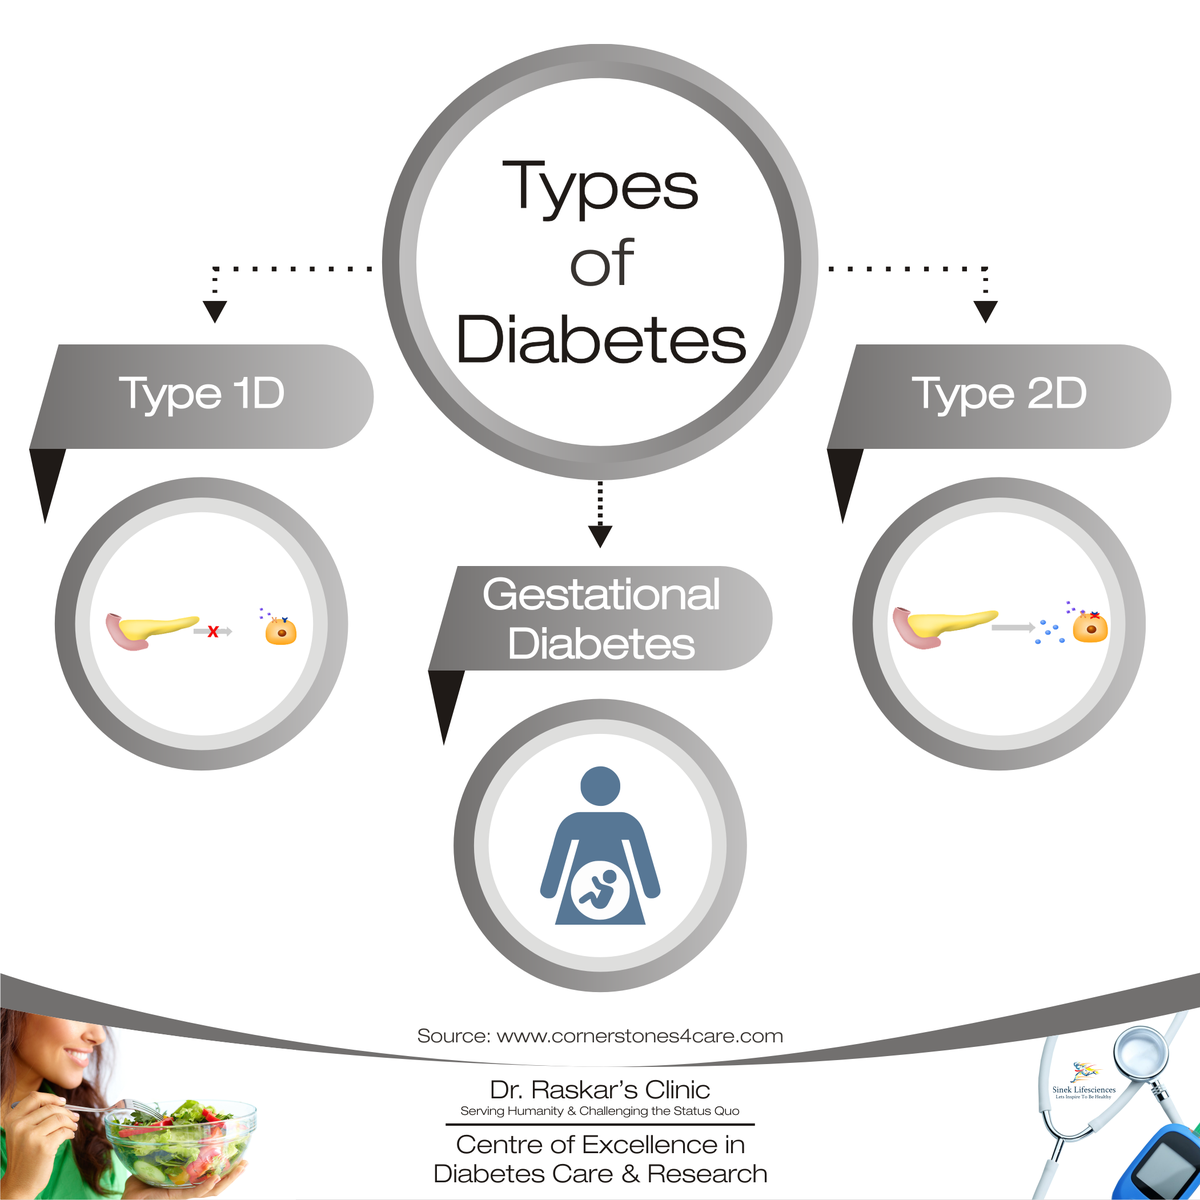 test Twitter Media - #Diabetes is a type of disease in which the body cannot properly store & use #sugar produce from the #food that we eat as a result of metabolic activity of the body. There r mainly 3 types of Diabetes-#GestationalDiabetes #Type2Diabetes #Type1Diabetes #Type1D #Type2D #T1D #T2D https://t.co/BB5VqmShEb